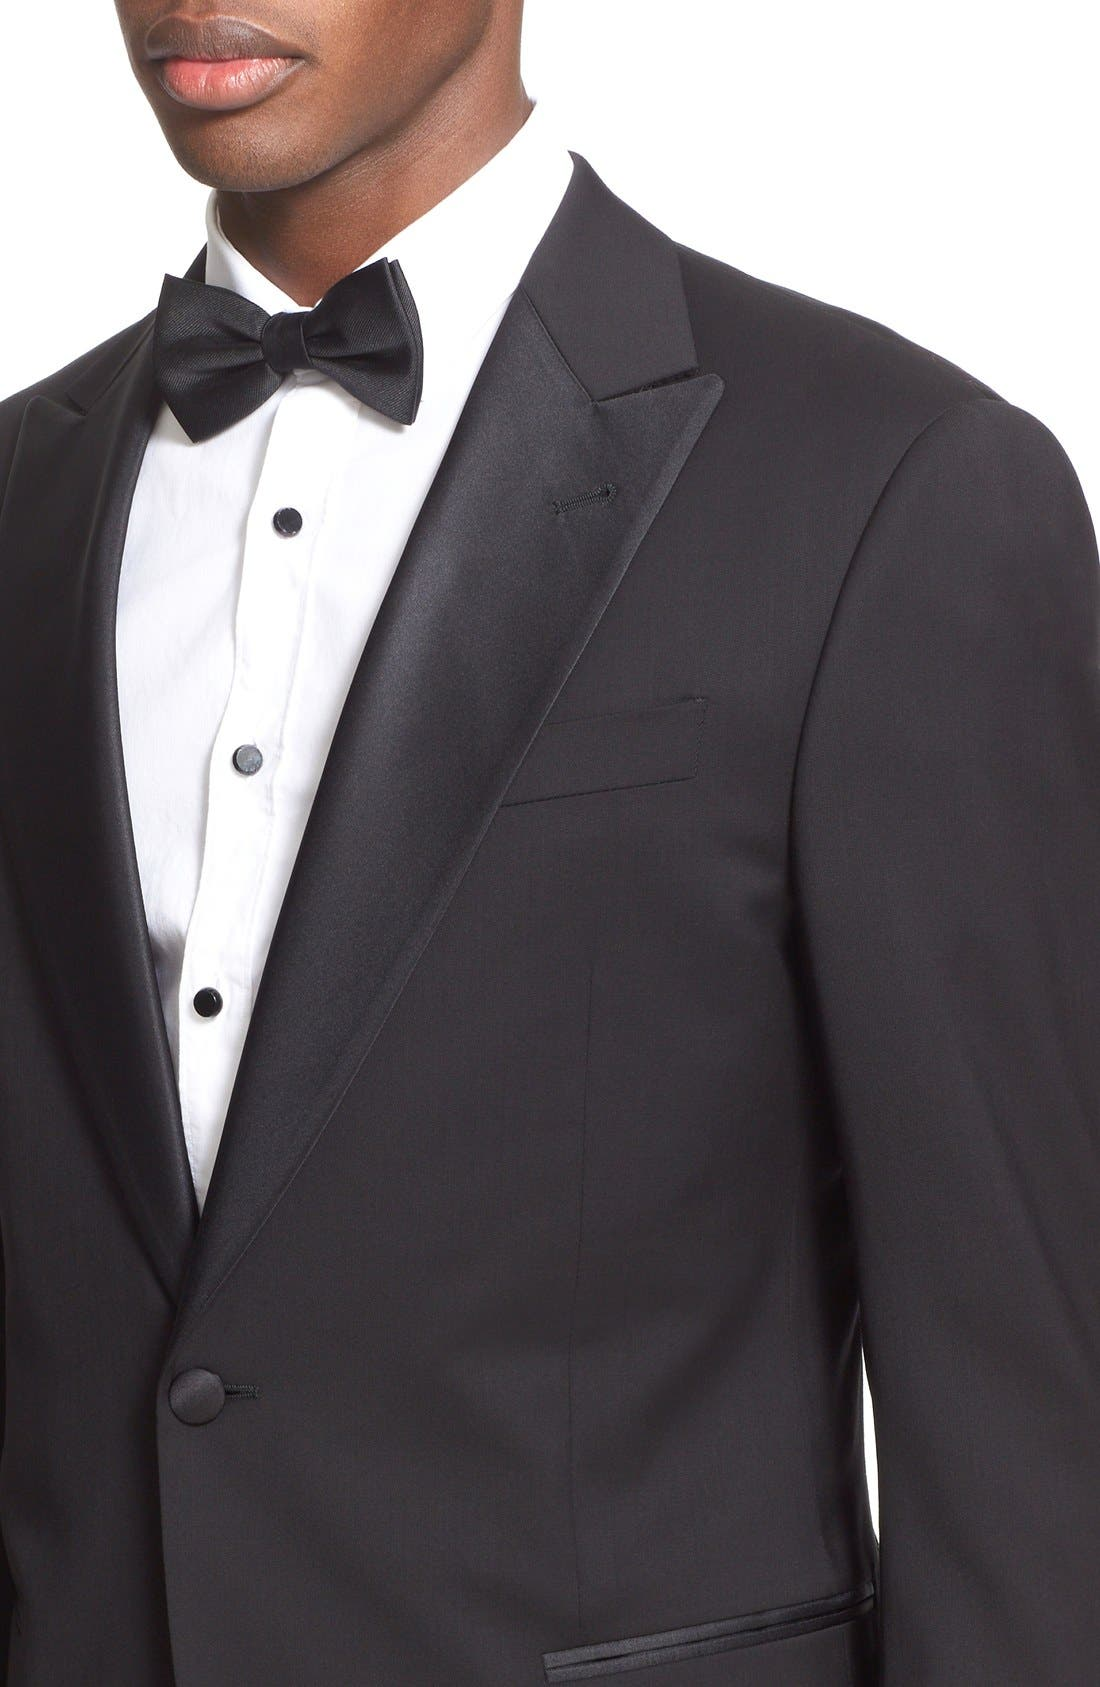 Trim Fit Wool Tuxedo,                             Alternate thumbnail 12, color,                             001